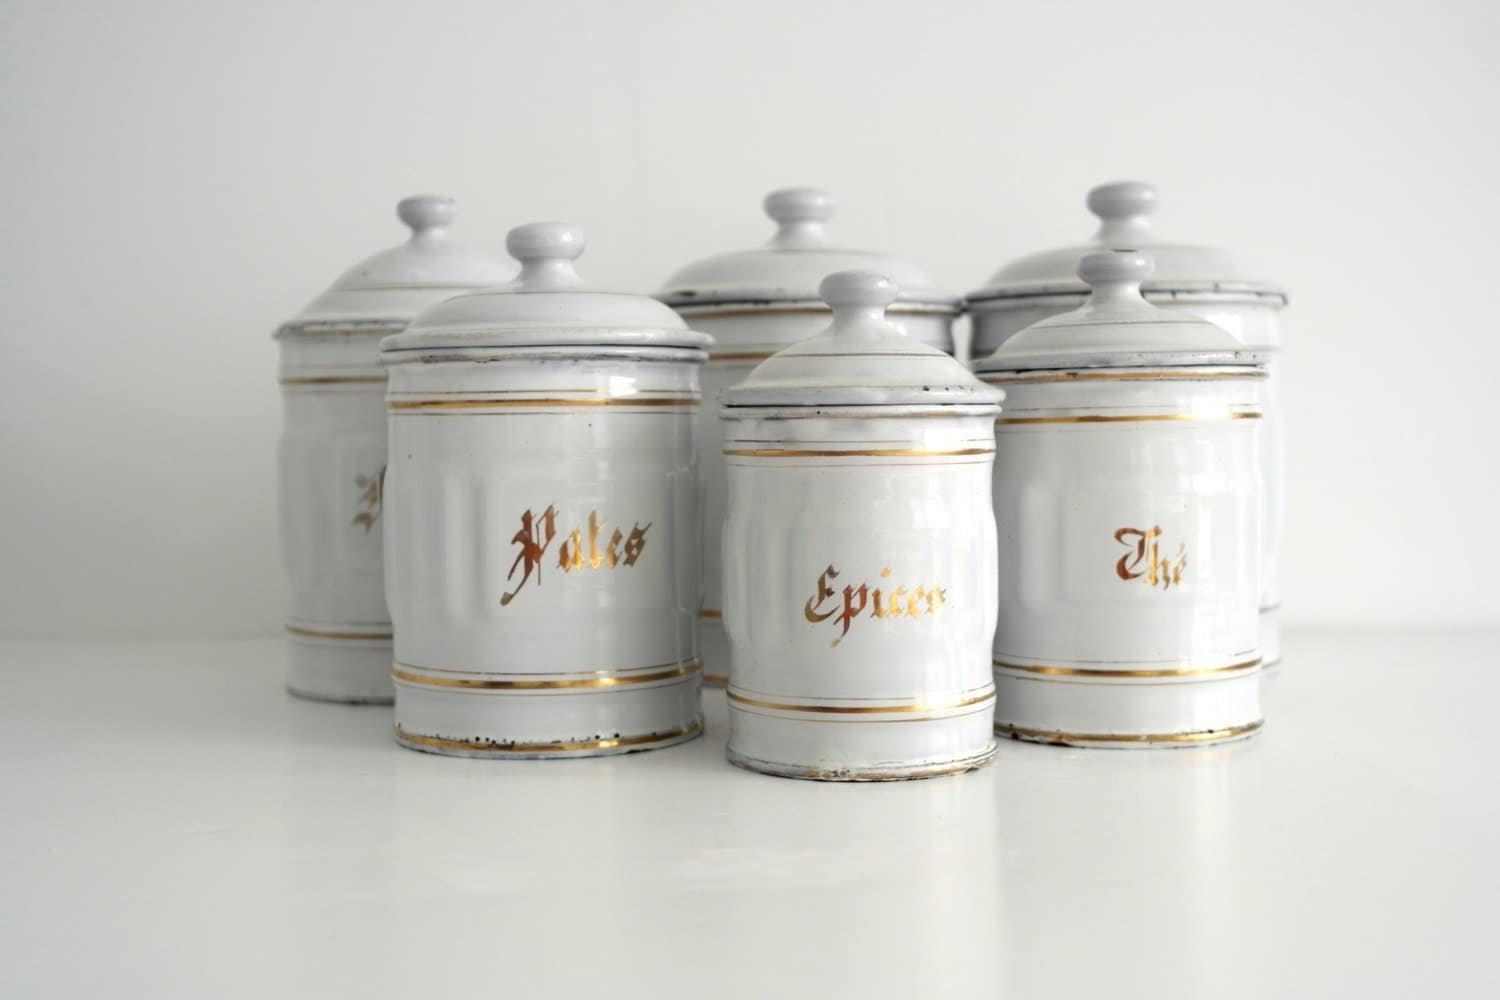 French 6 Large Size Enamelware Canisters Kitchen Pots Spice